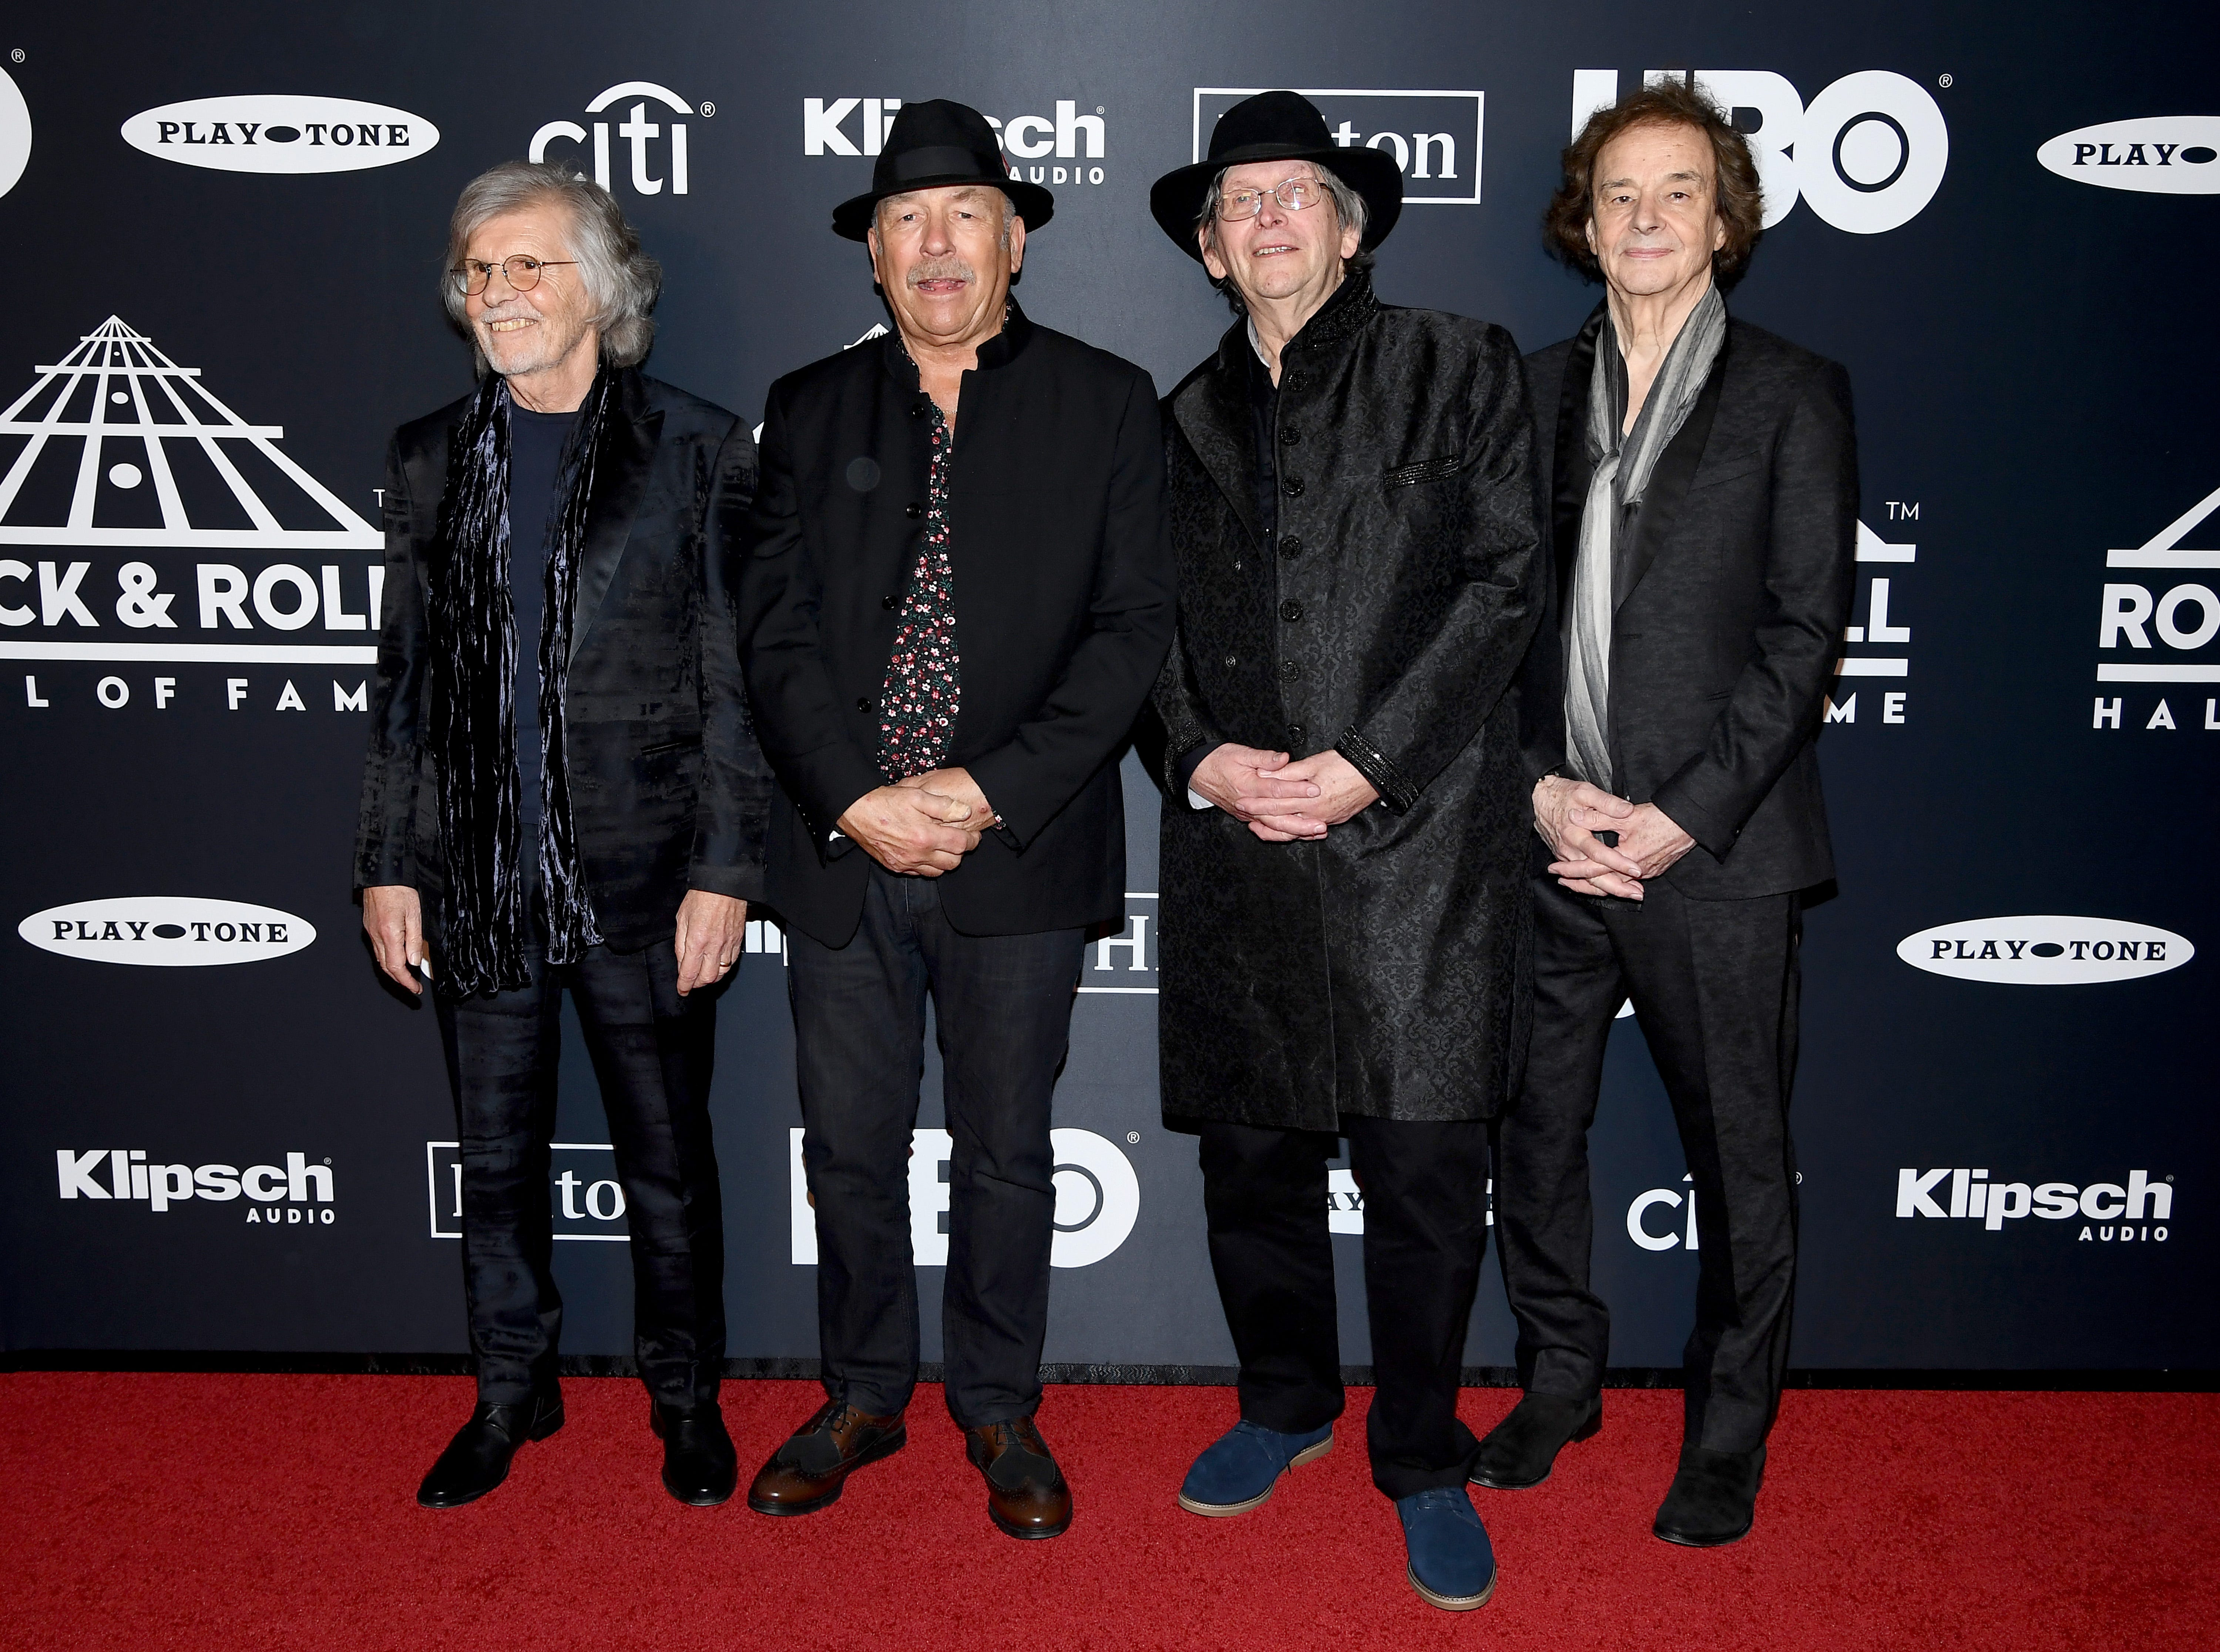 NEW YORK, NEW YORK - MARCH 29: Rod Argent, Hugh Grundy, Chris White, and Colin Blunstone of The Zombies attend the 2019 Rock & Roll Hall Of Fame Induction Ceremony at Barclays Center on March 29, 2019 in New York City. (Photo by Dimitrios Kambouris/Getty Images For The Rock and Roll Hall of Fame) ORG XMIT: 775320639 ORIG FILE ID: 1139160303